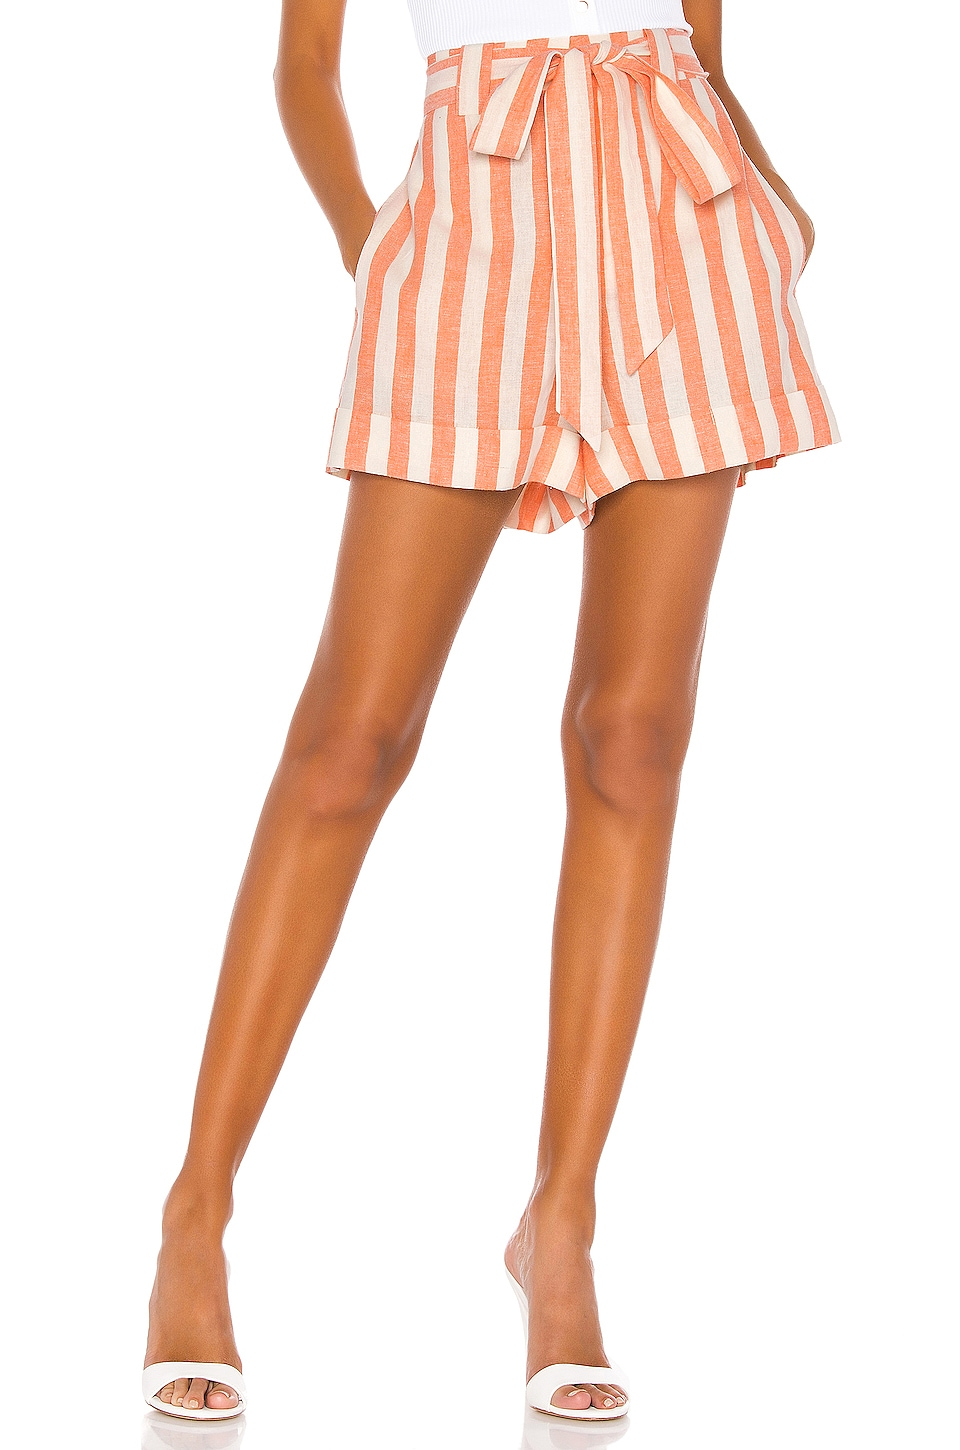 Show Me Your Mumu Hadley Shorts in Dreamsicle Stripe